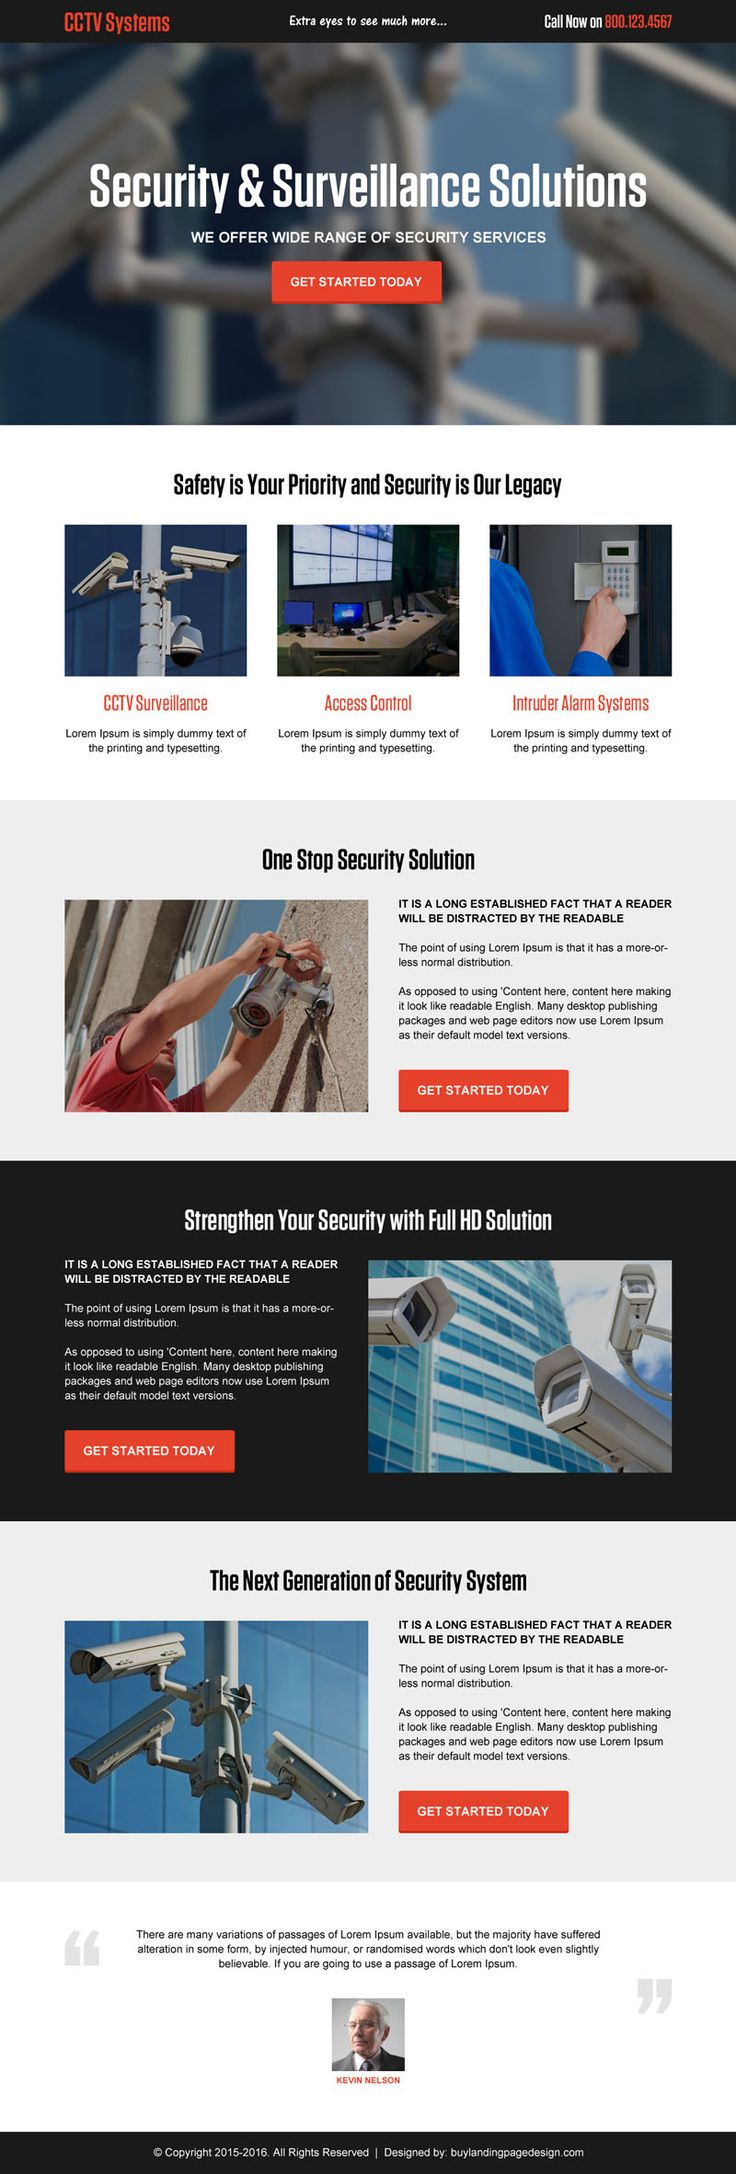 cctv-security-system-solutions-cta-lp-005 | Security landing page design preview.